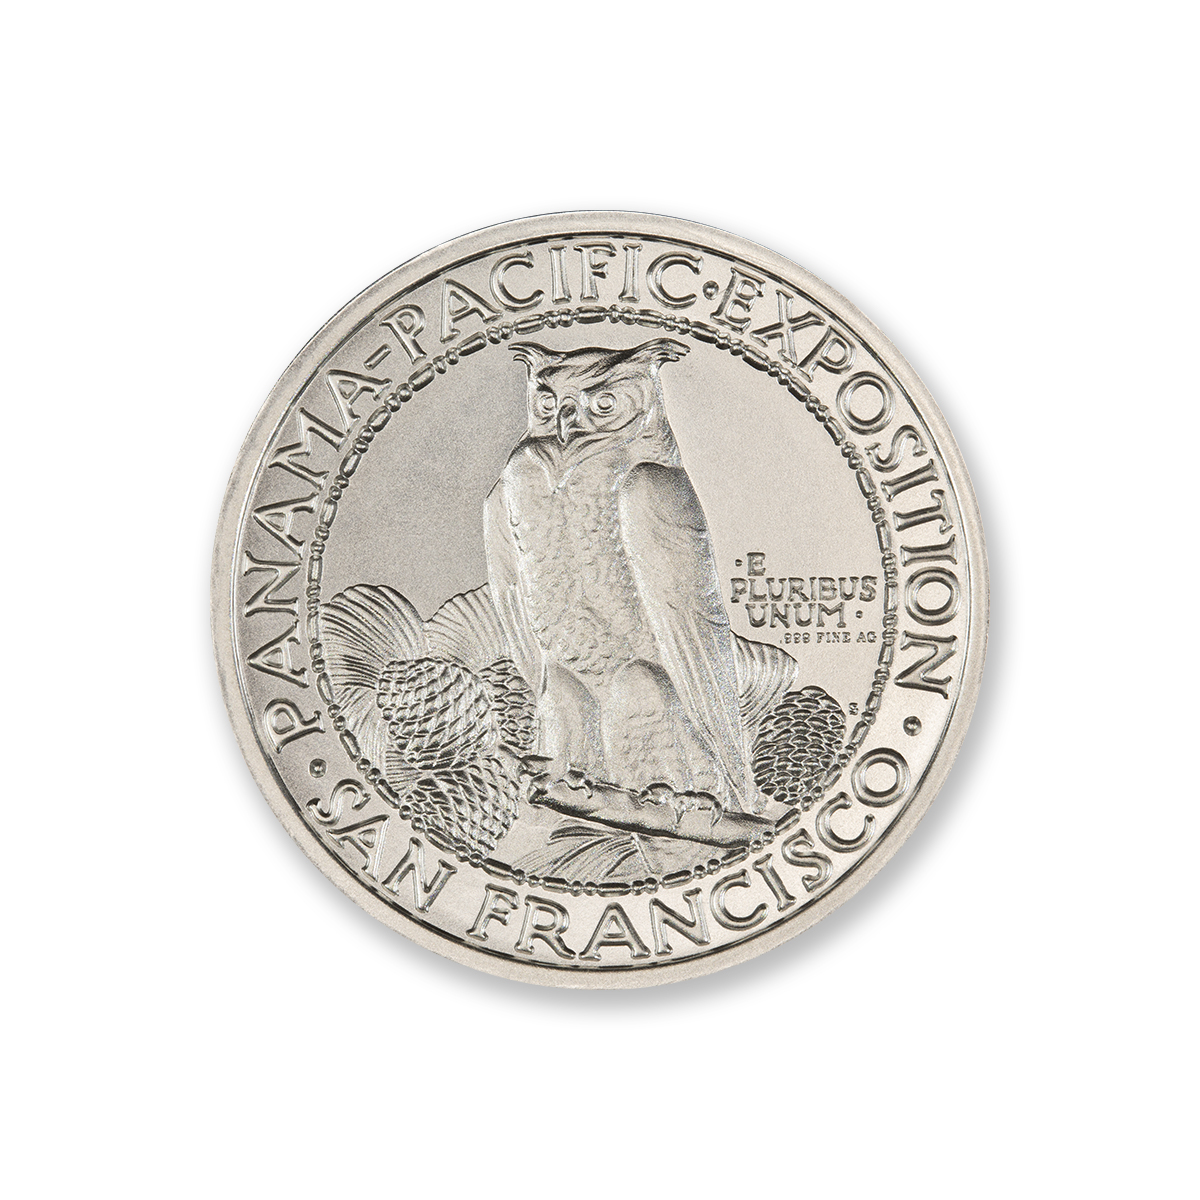 PAN-PAC ROUND TRIBUTE – 2 TROY OUNCE – 39MM